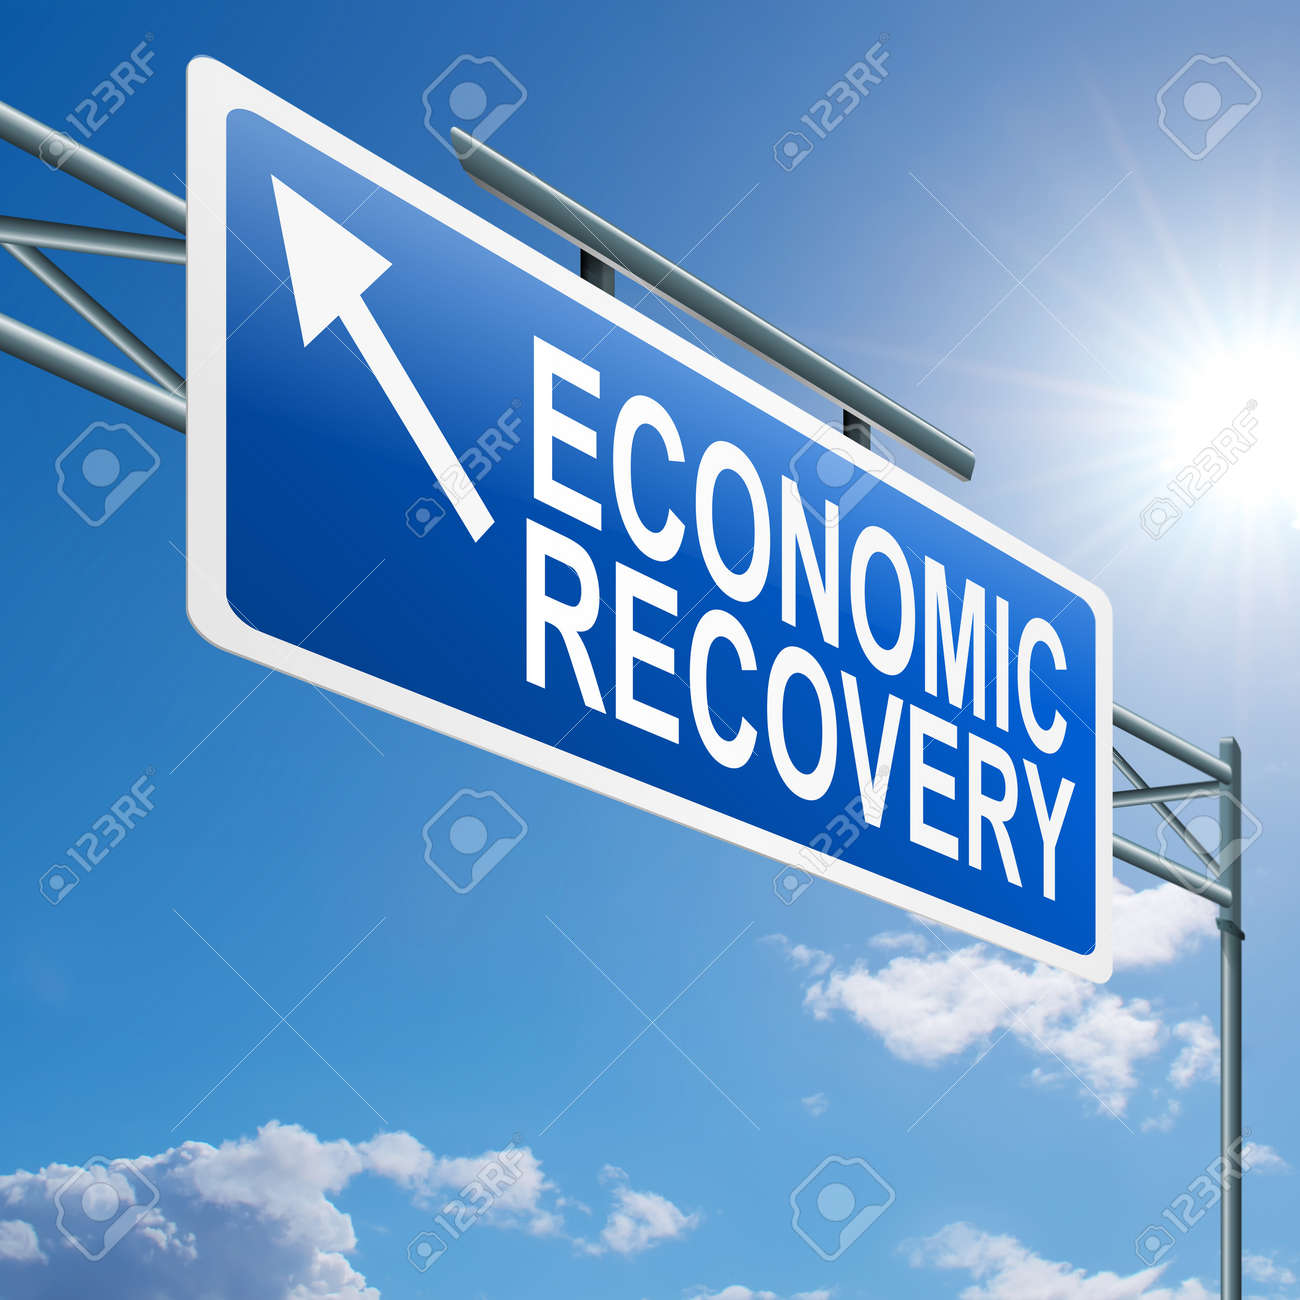 Illustration depicting a highway gantry sign with an economic recovery concept  Blue sky background Stock Illustration - 14191206